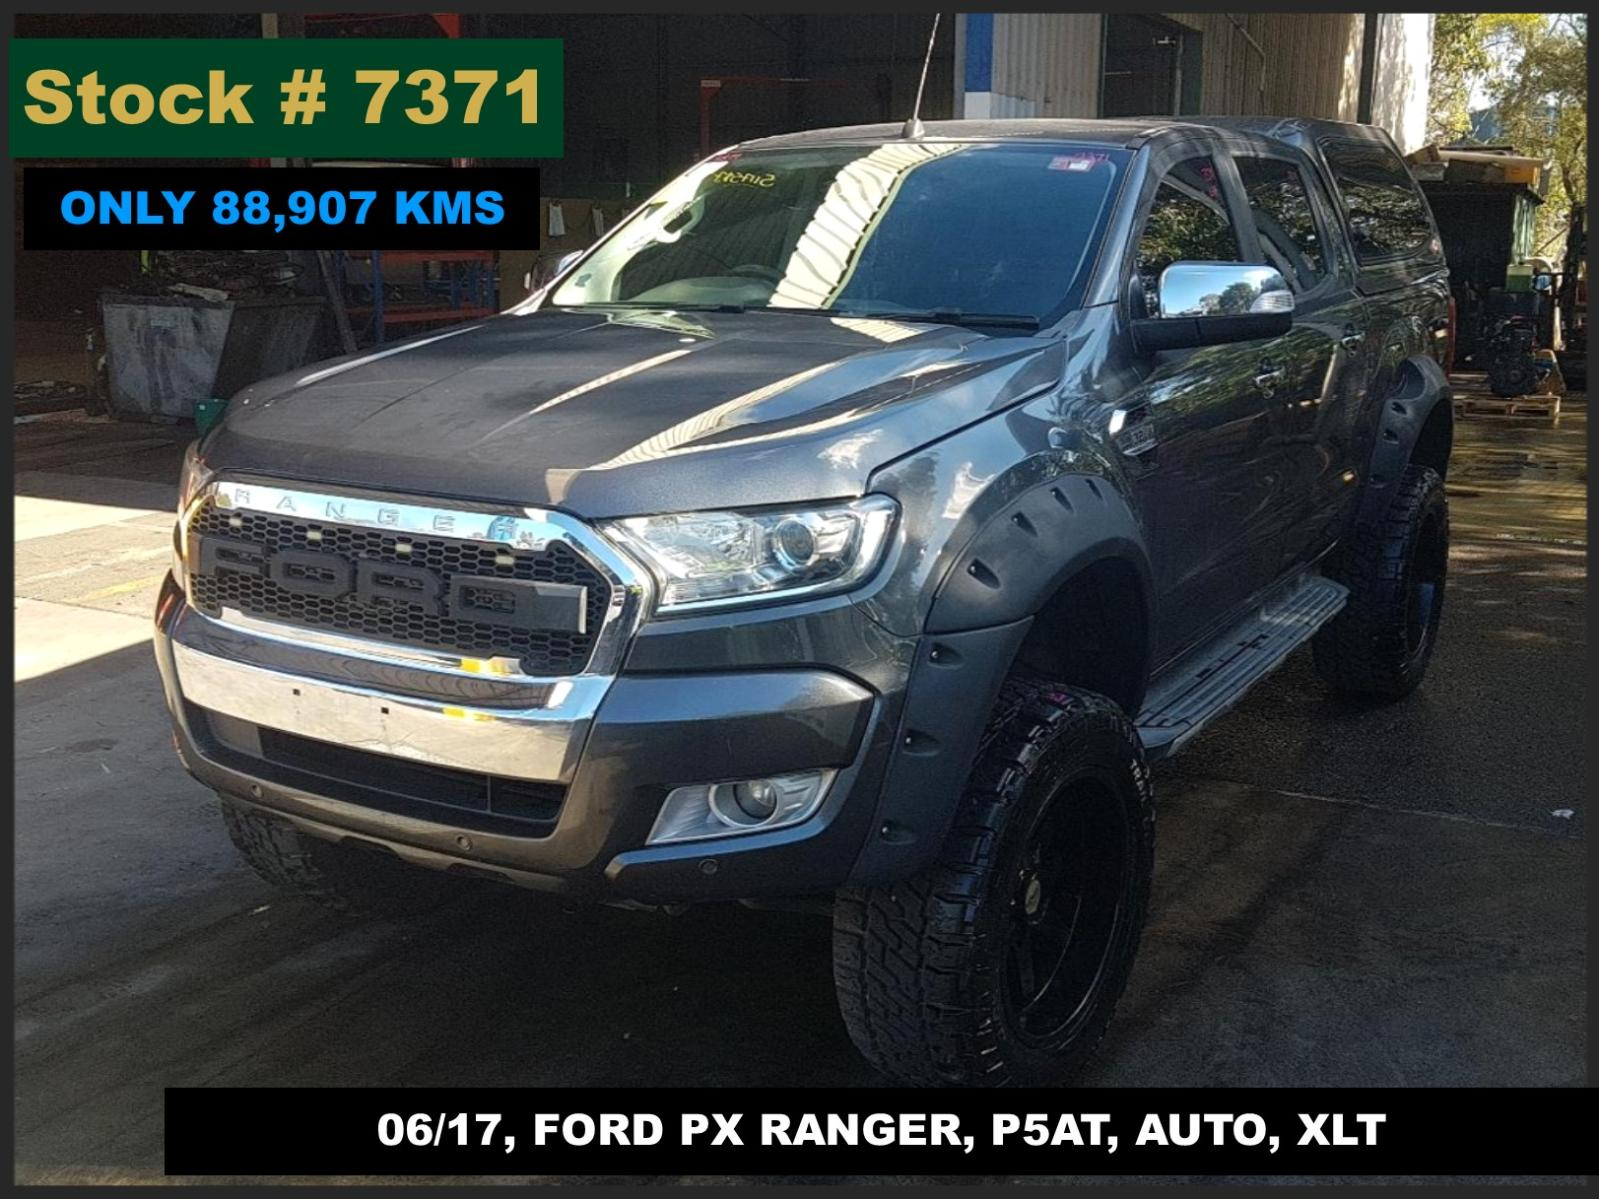 Image for a Ford Ranger 2017 4 Door Utility